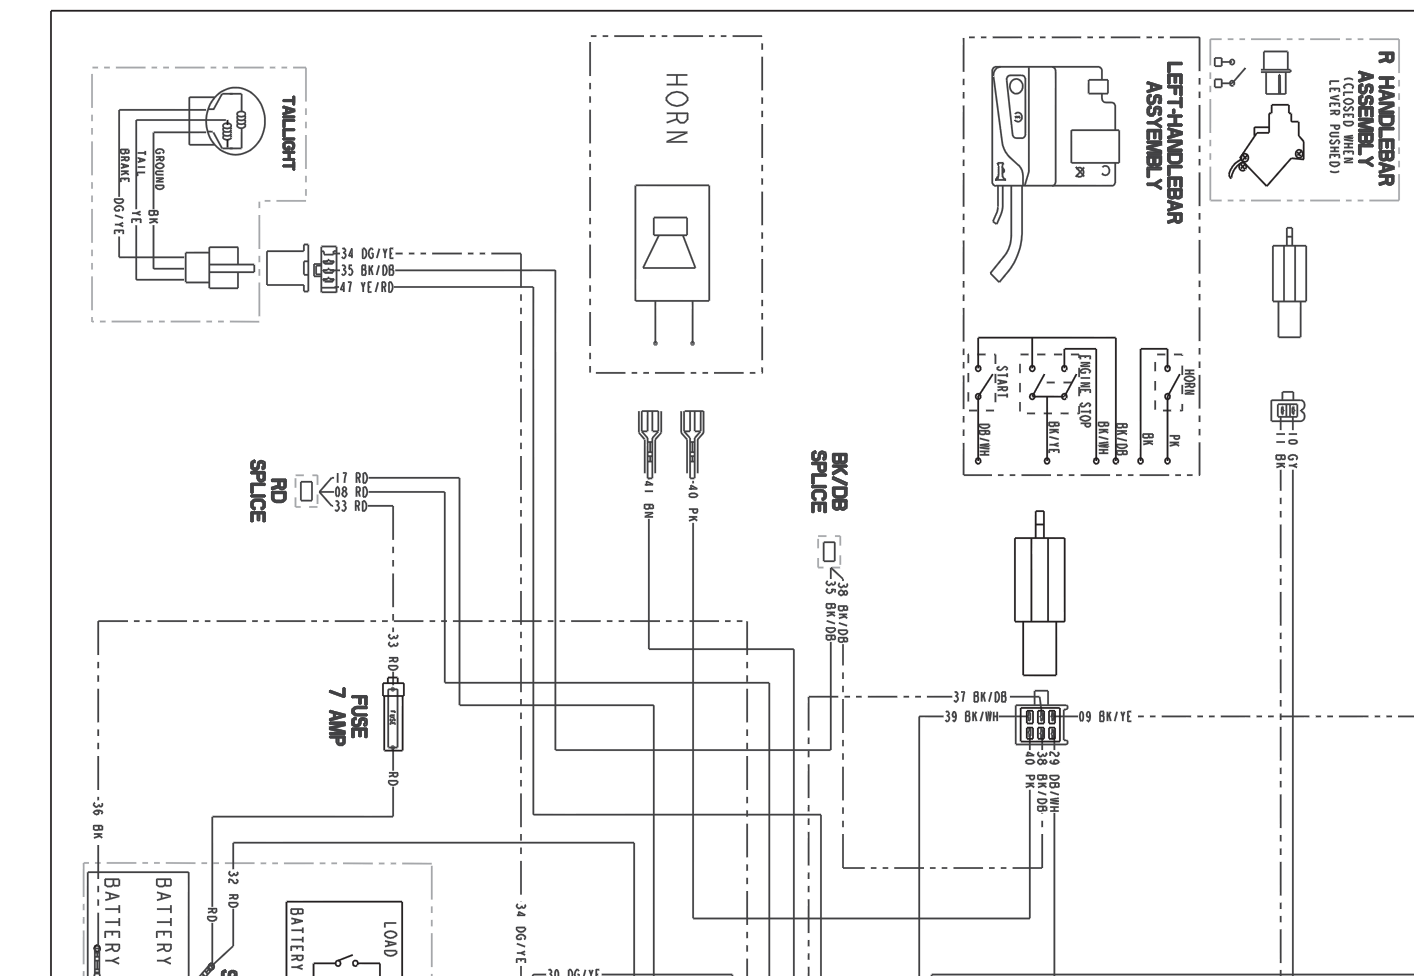 polaris sportsman 800 wiring diagram get free image 2004 Polaris Sportsman  400 Wiring Diagram 1996 Polaris